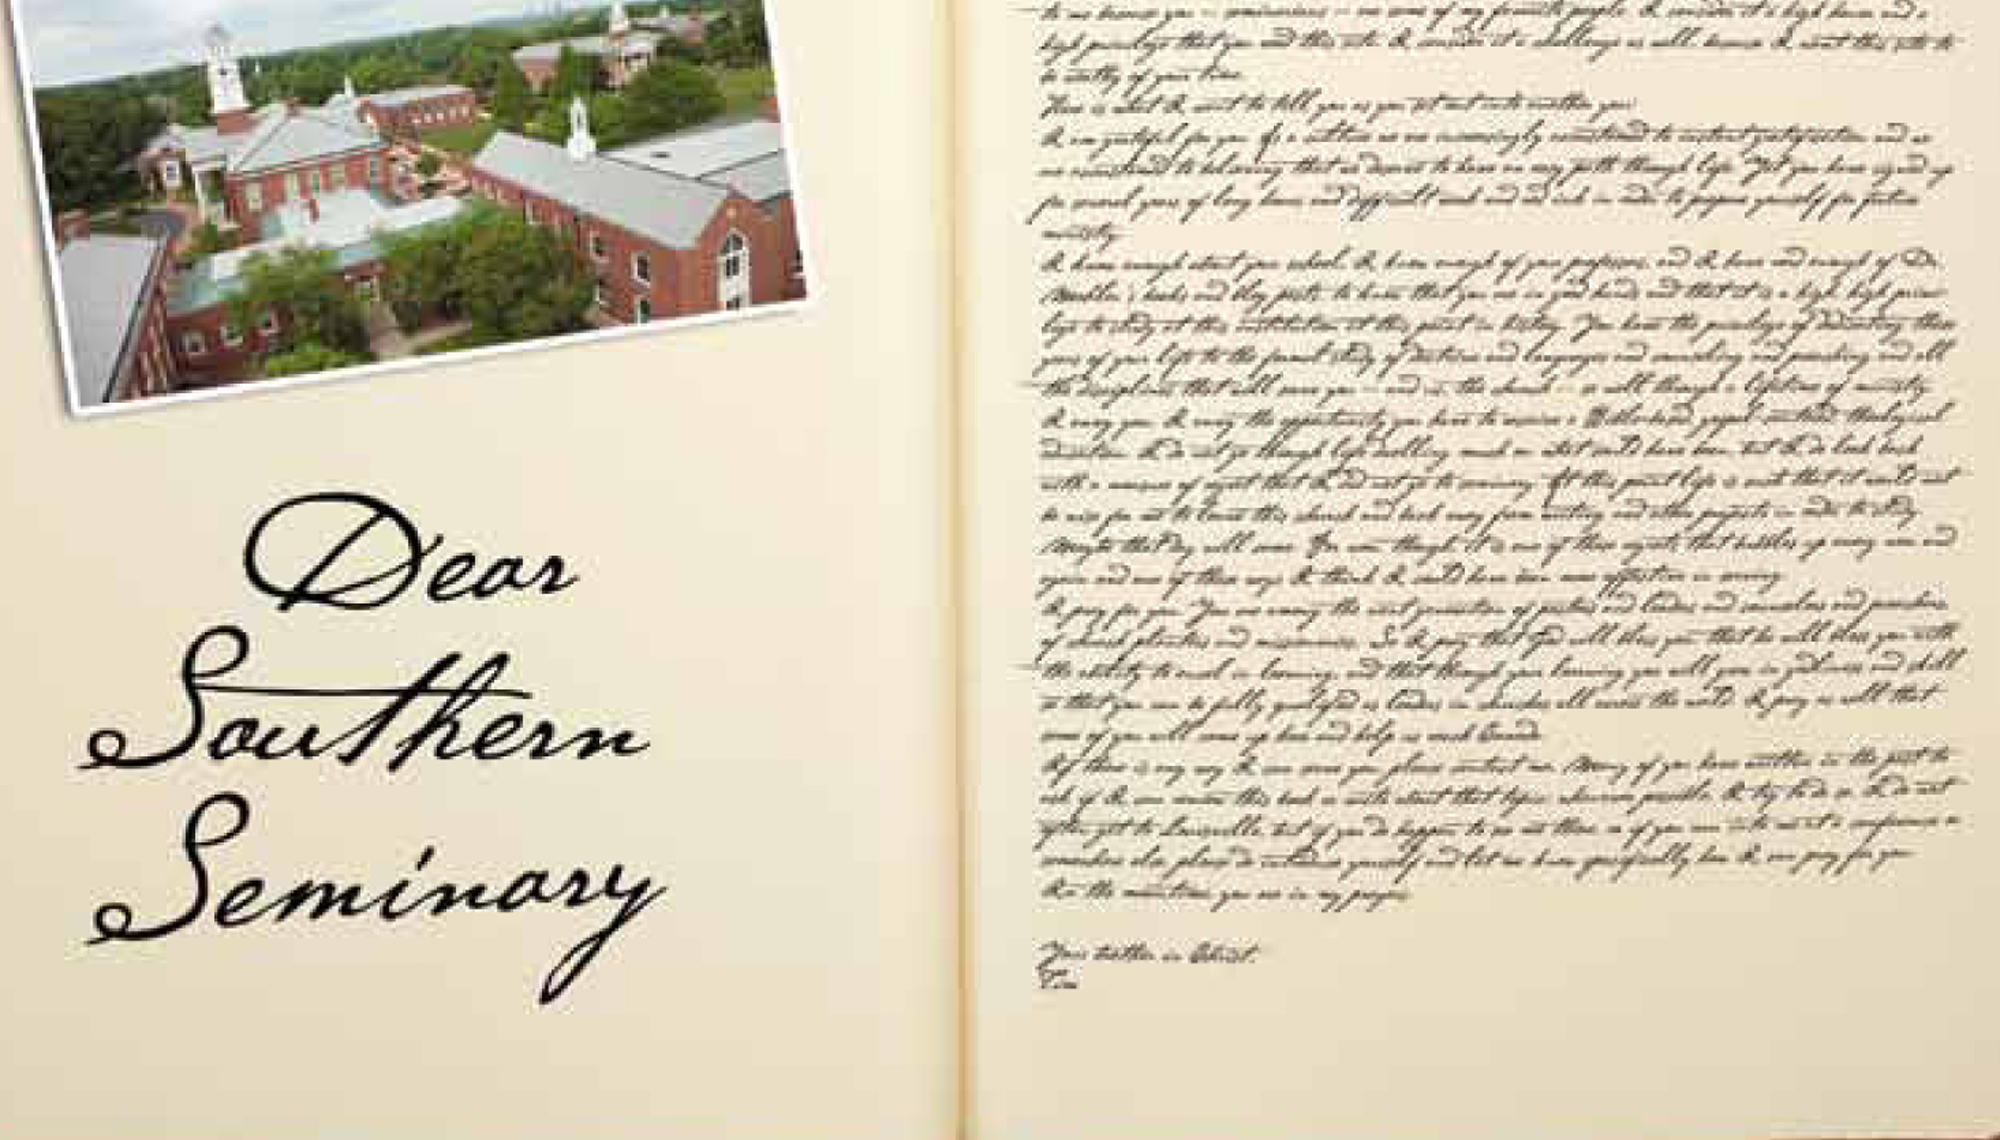 Dear Southern Seminary: Tim Challies writes letter to students at Southern Seminary